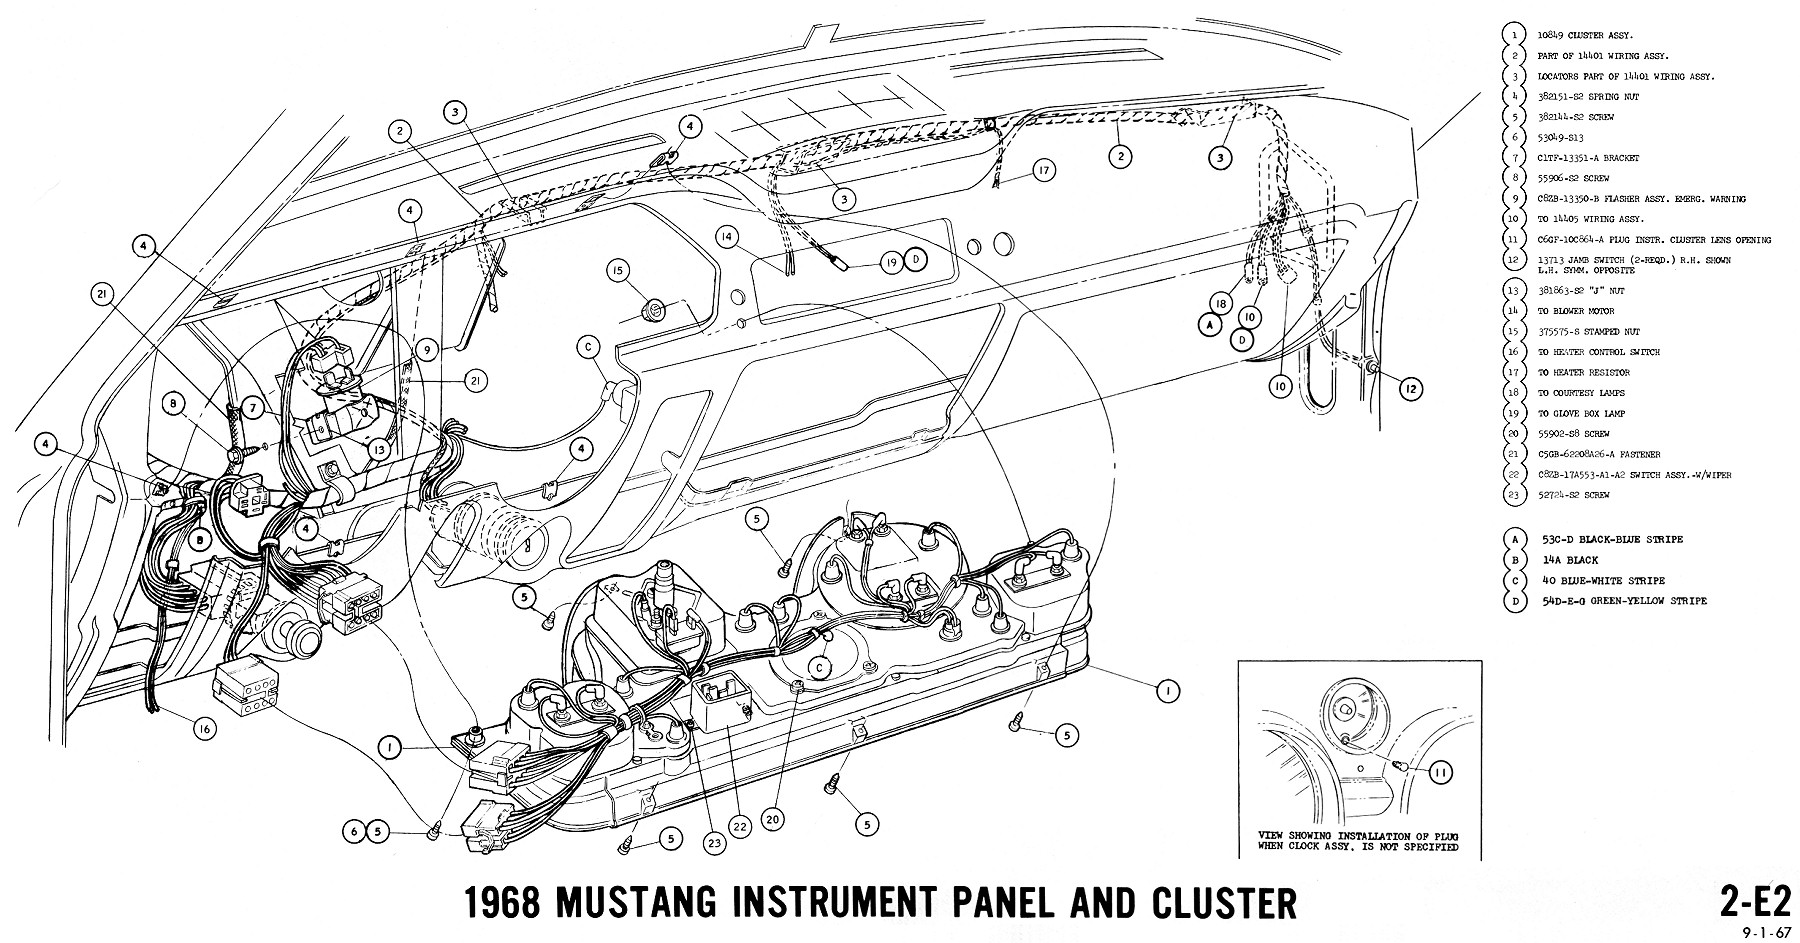 1968 Mustang Wiring Diagrams And Vacuum Schematics Average Joe 50 Ford Harness Diagram Instruments 2